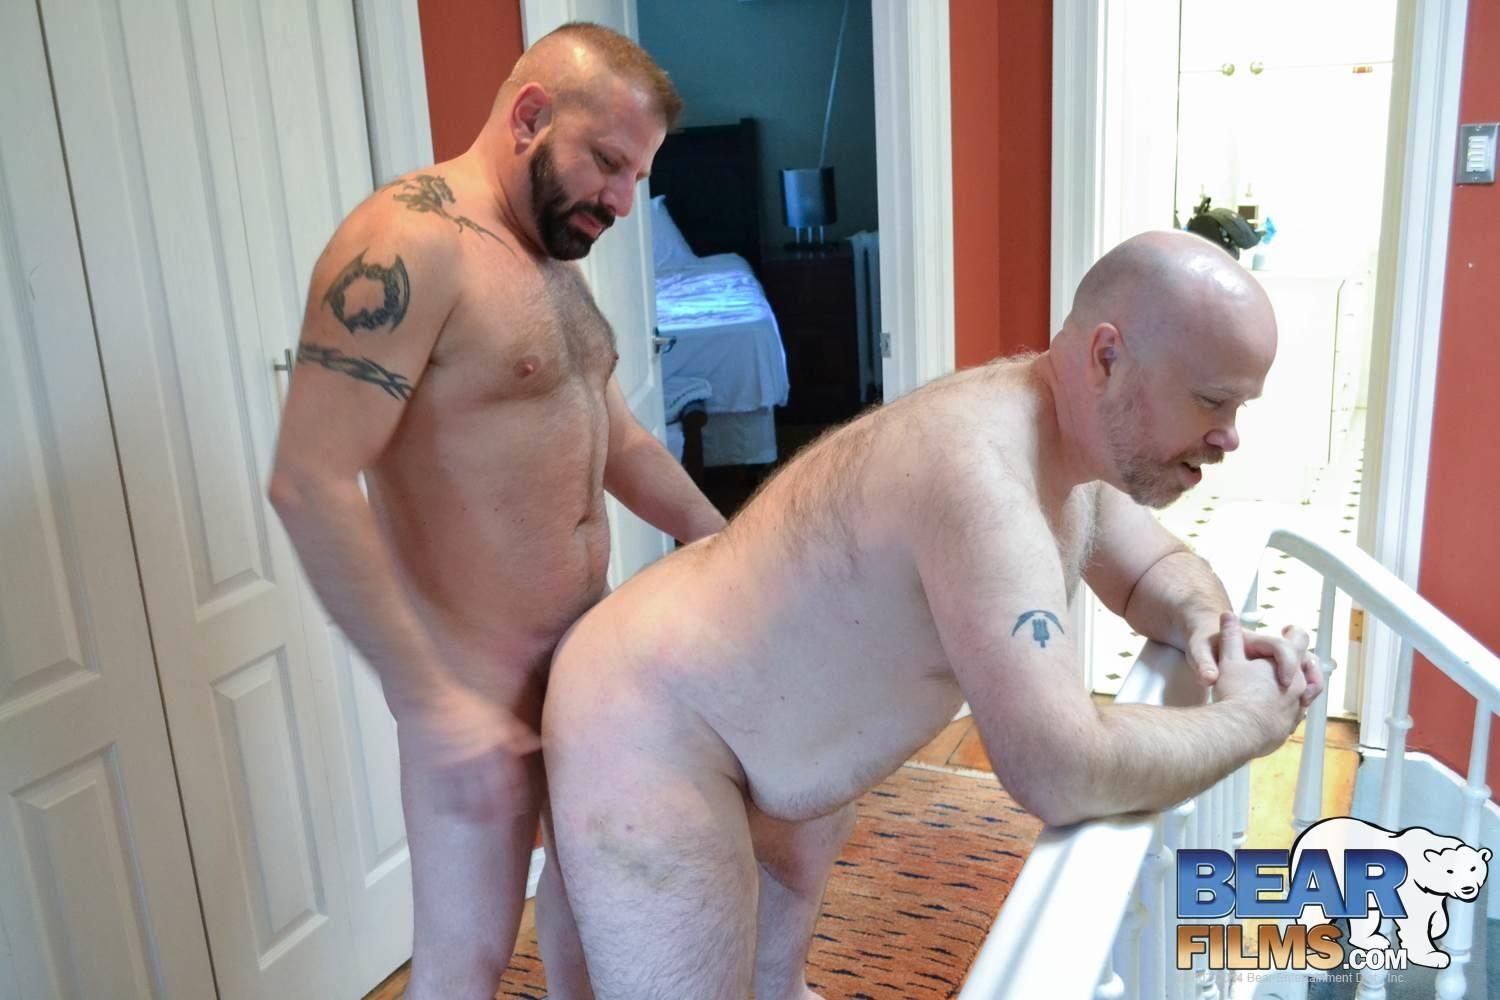 Bear-Films-Cooper-Hill-and-Steve-Brody-Chubby-Bears-Fucking-Amateur-Gay-Porn-04 Cooper Hill and Steve Brody: Chubby Hairy Bears Fucking